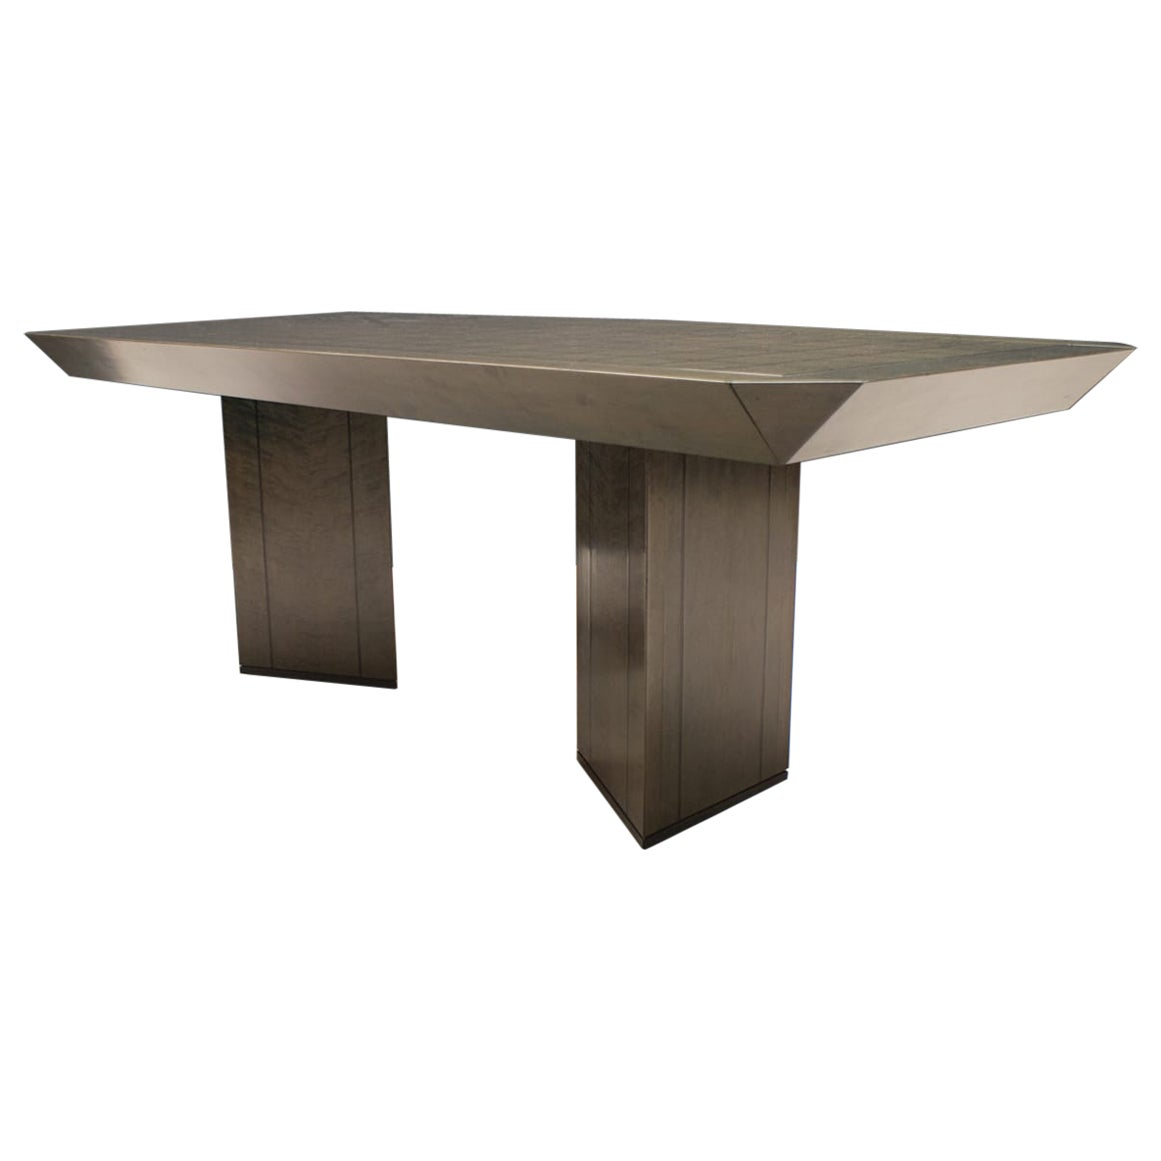 Saporiti Dining Table in Bird's-Eye Maple by Giovanni Offredi